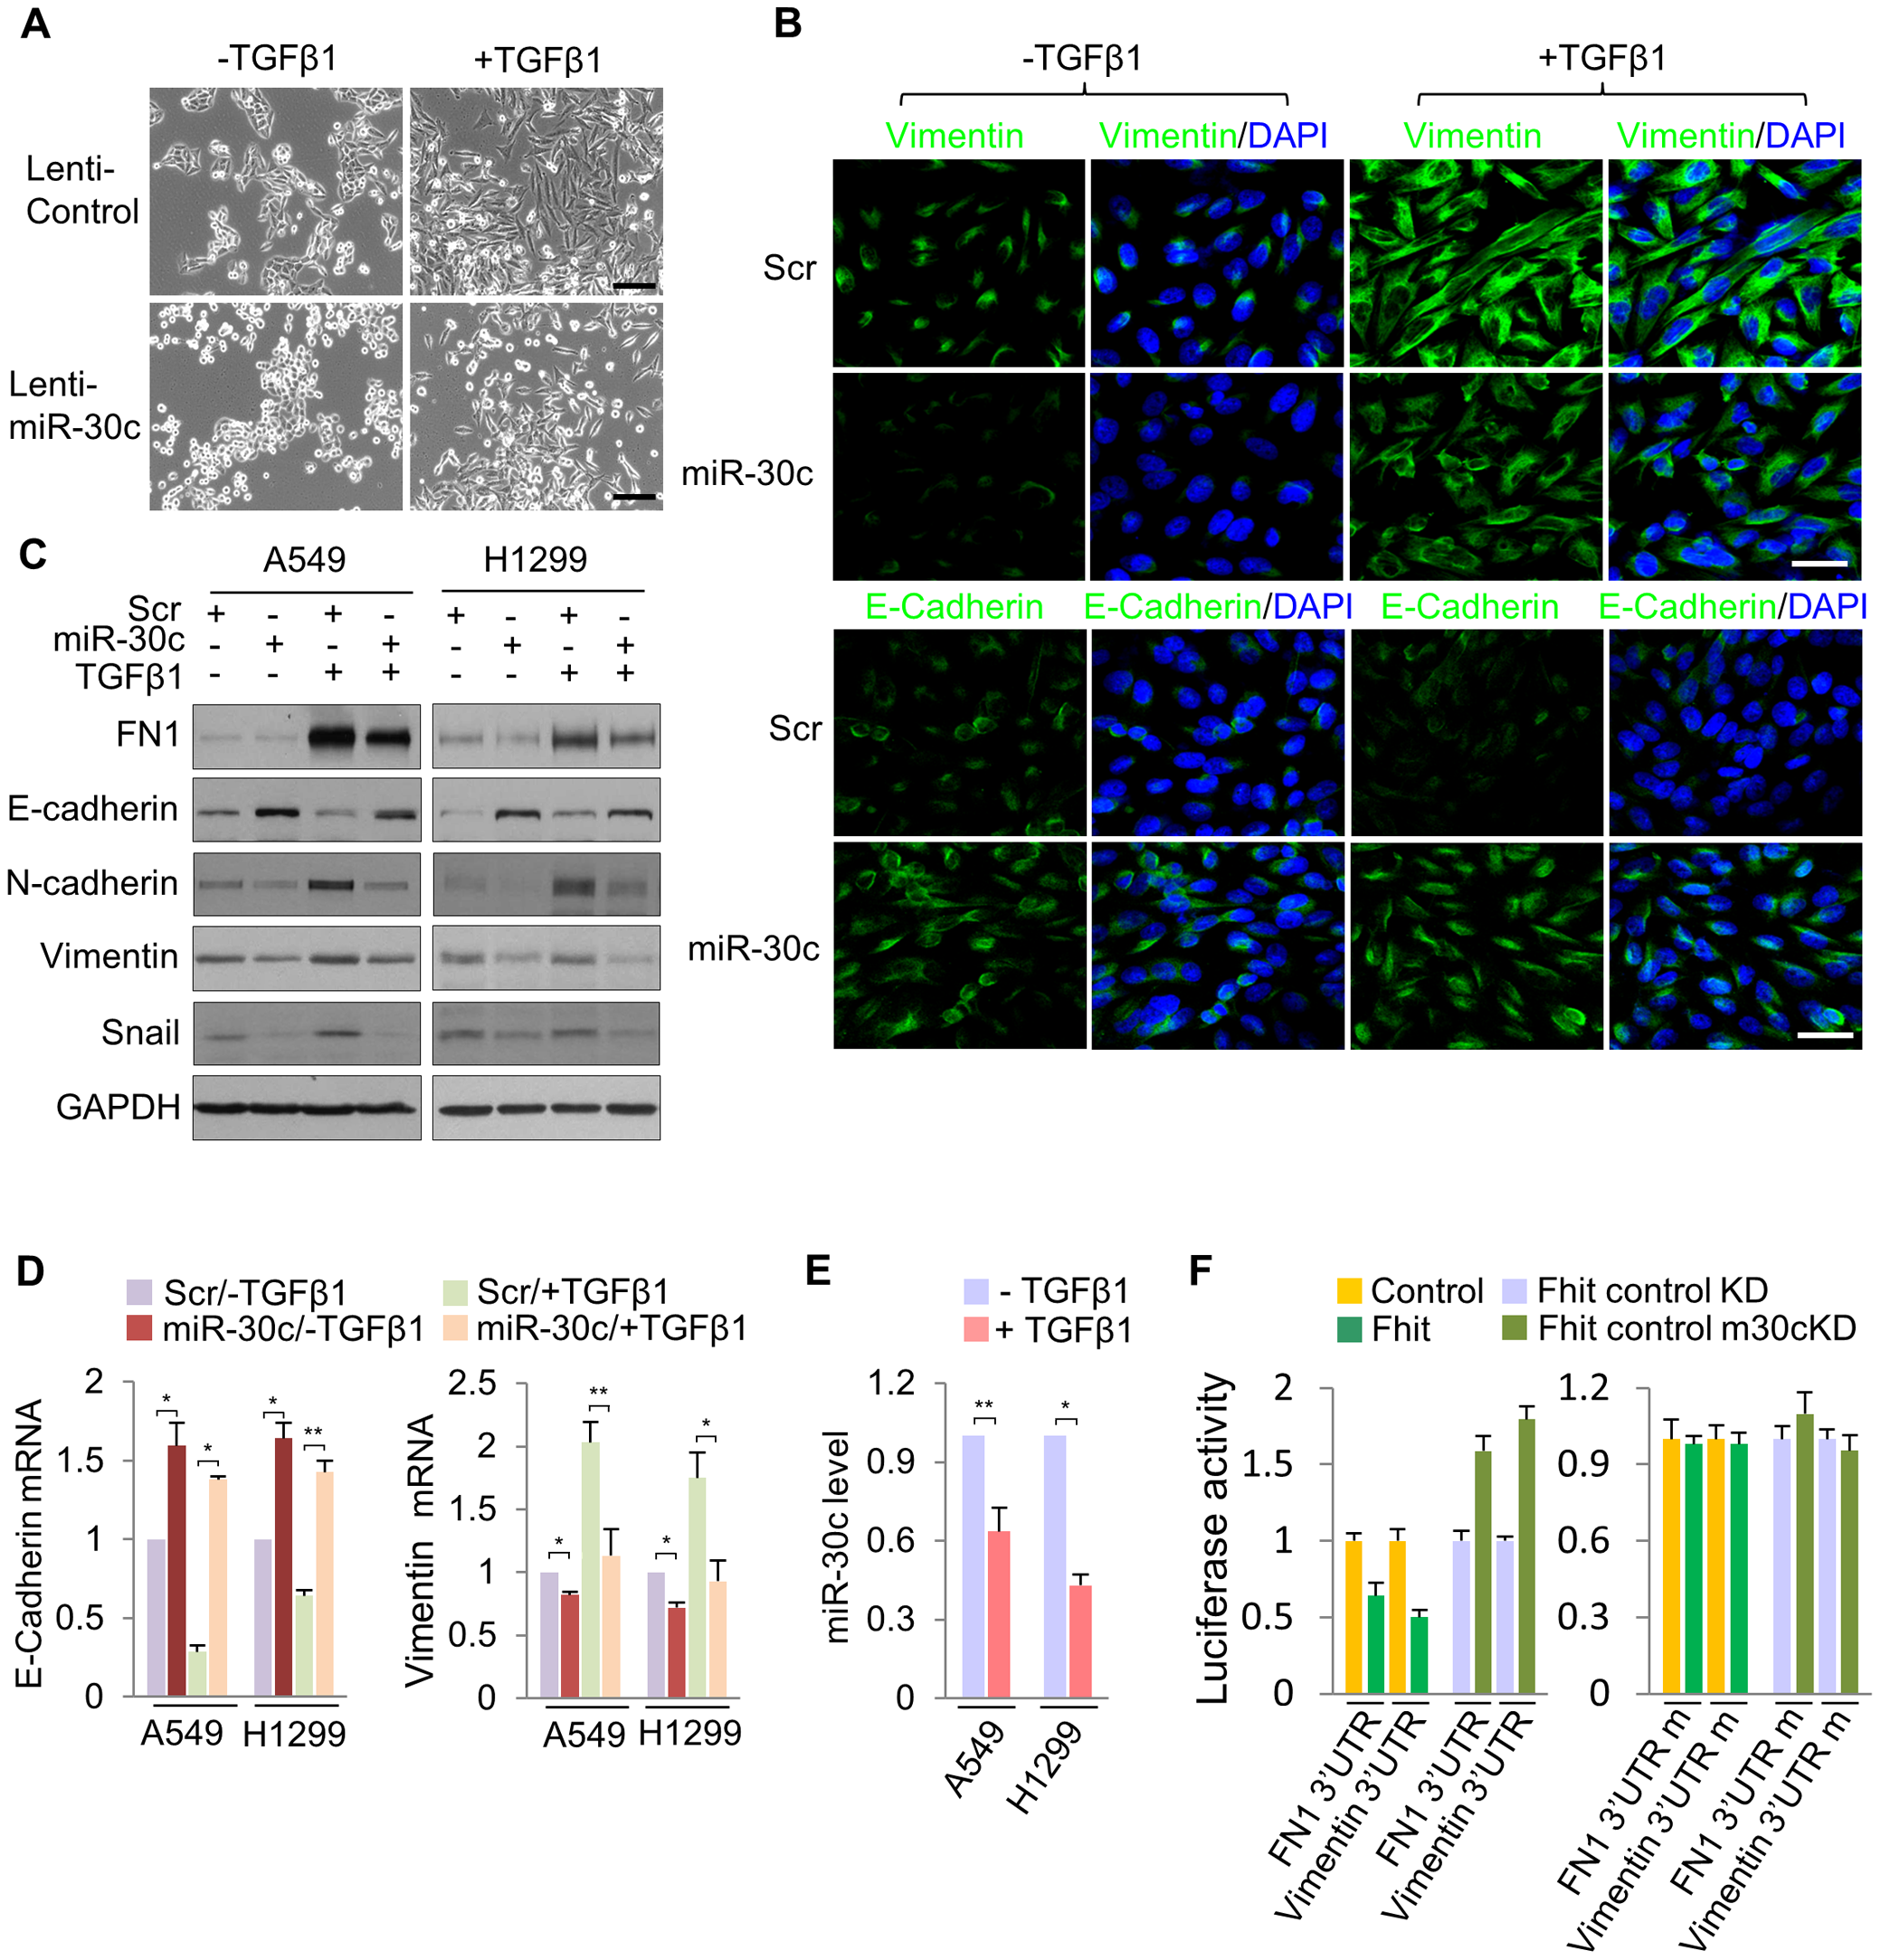 miR-30c inhibits TGF-β-induced EMT through direct targeting of Vimentin and Fibronectin.